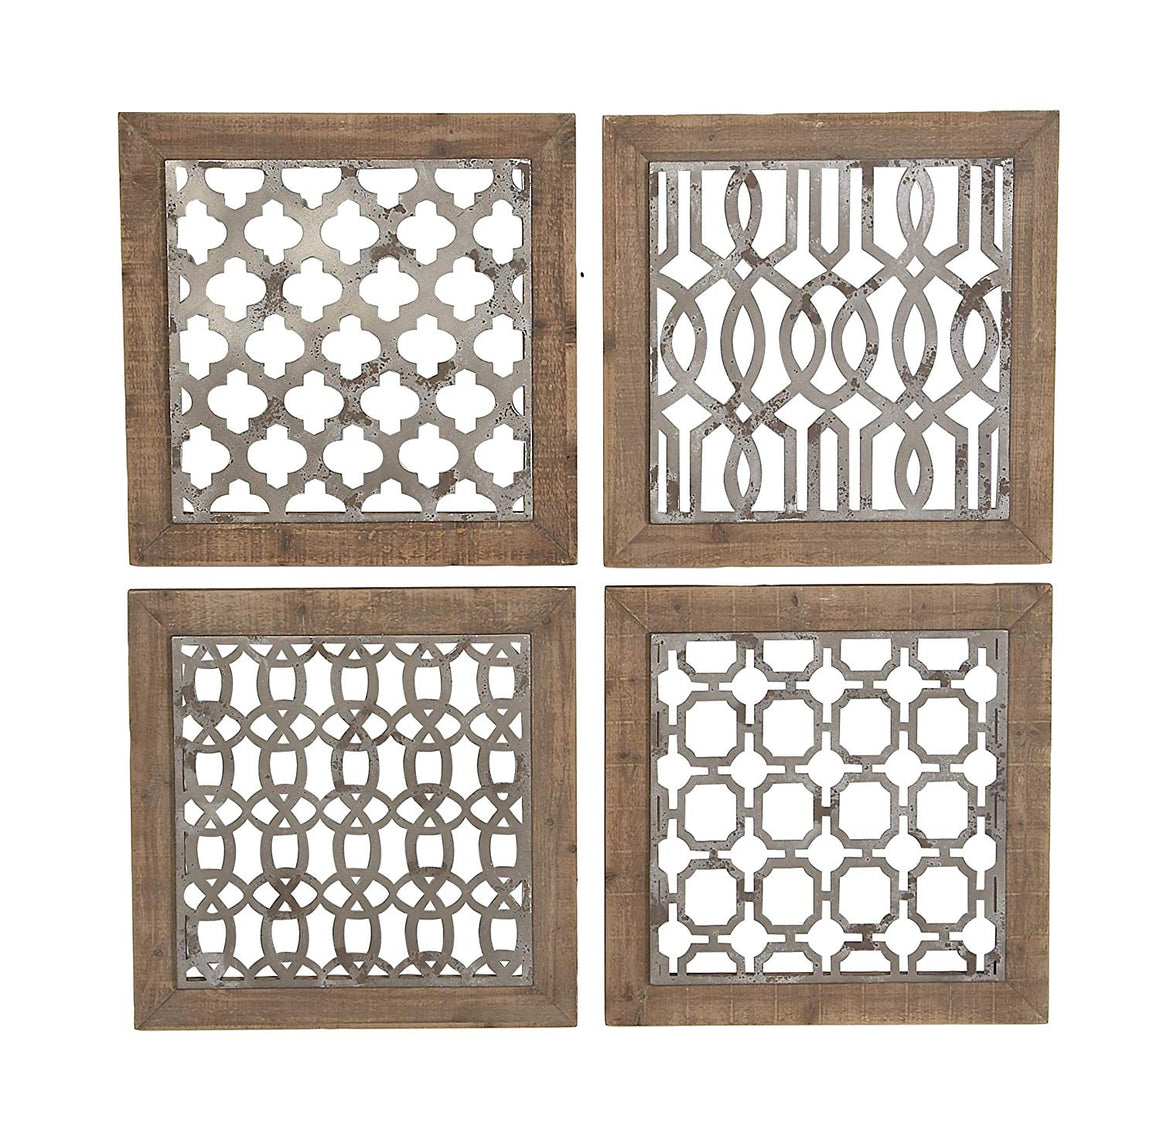 Ten Waterloo Metal and Wood Wall Decor, Set of 4 Framed Wall Tiles, 19.75 Inches x 19.75 Inches Each- 40 Inches x 40 Inches Total, Matte Grey Metal and Wood